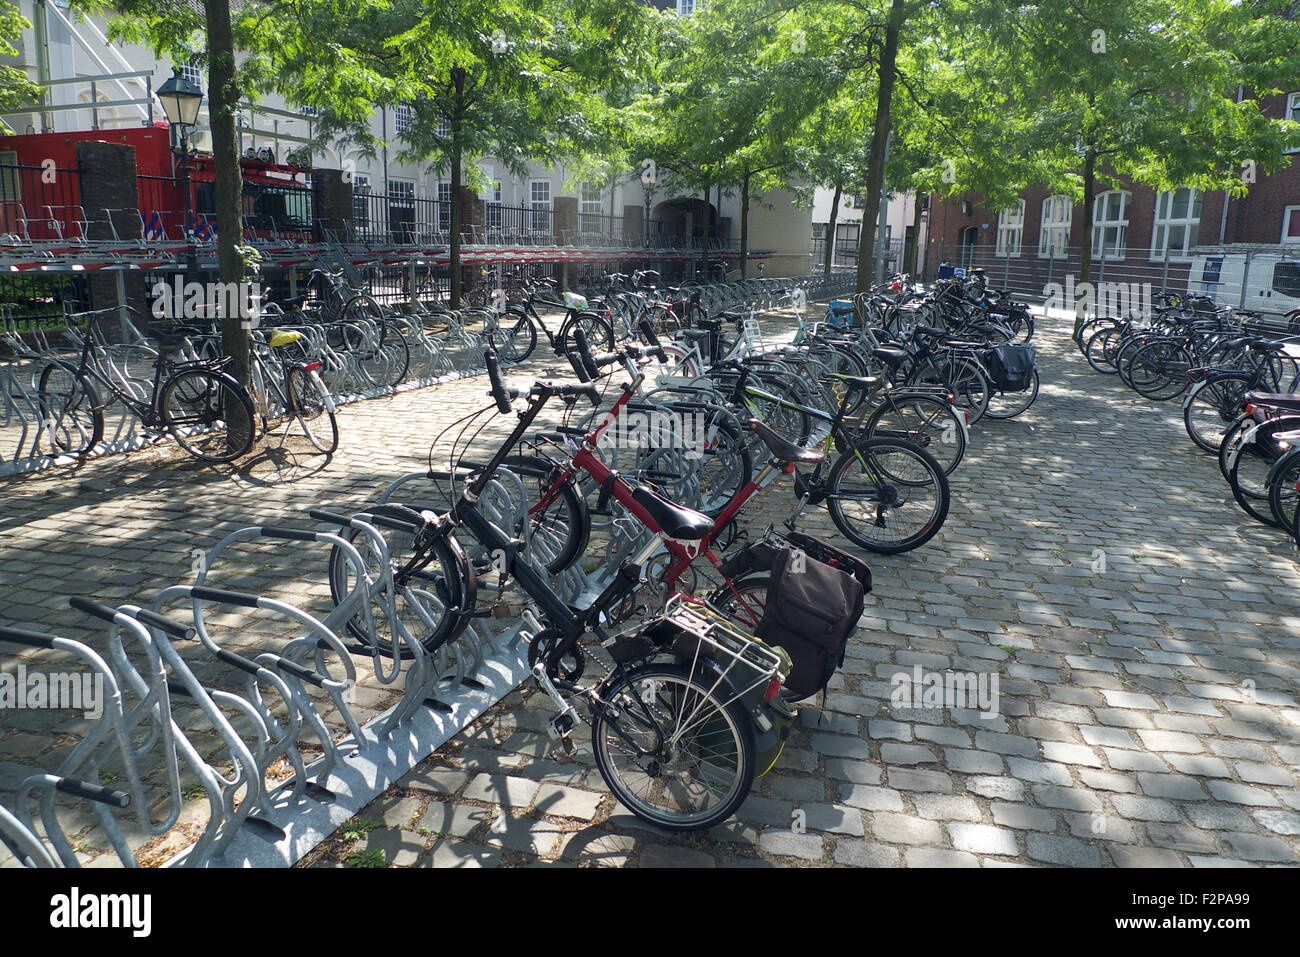 Secure cycle parking area, Breda, Netherlands. - Stock Image